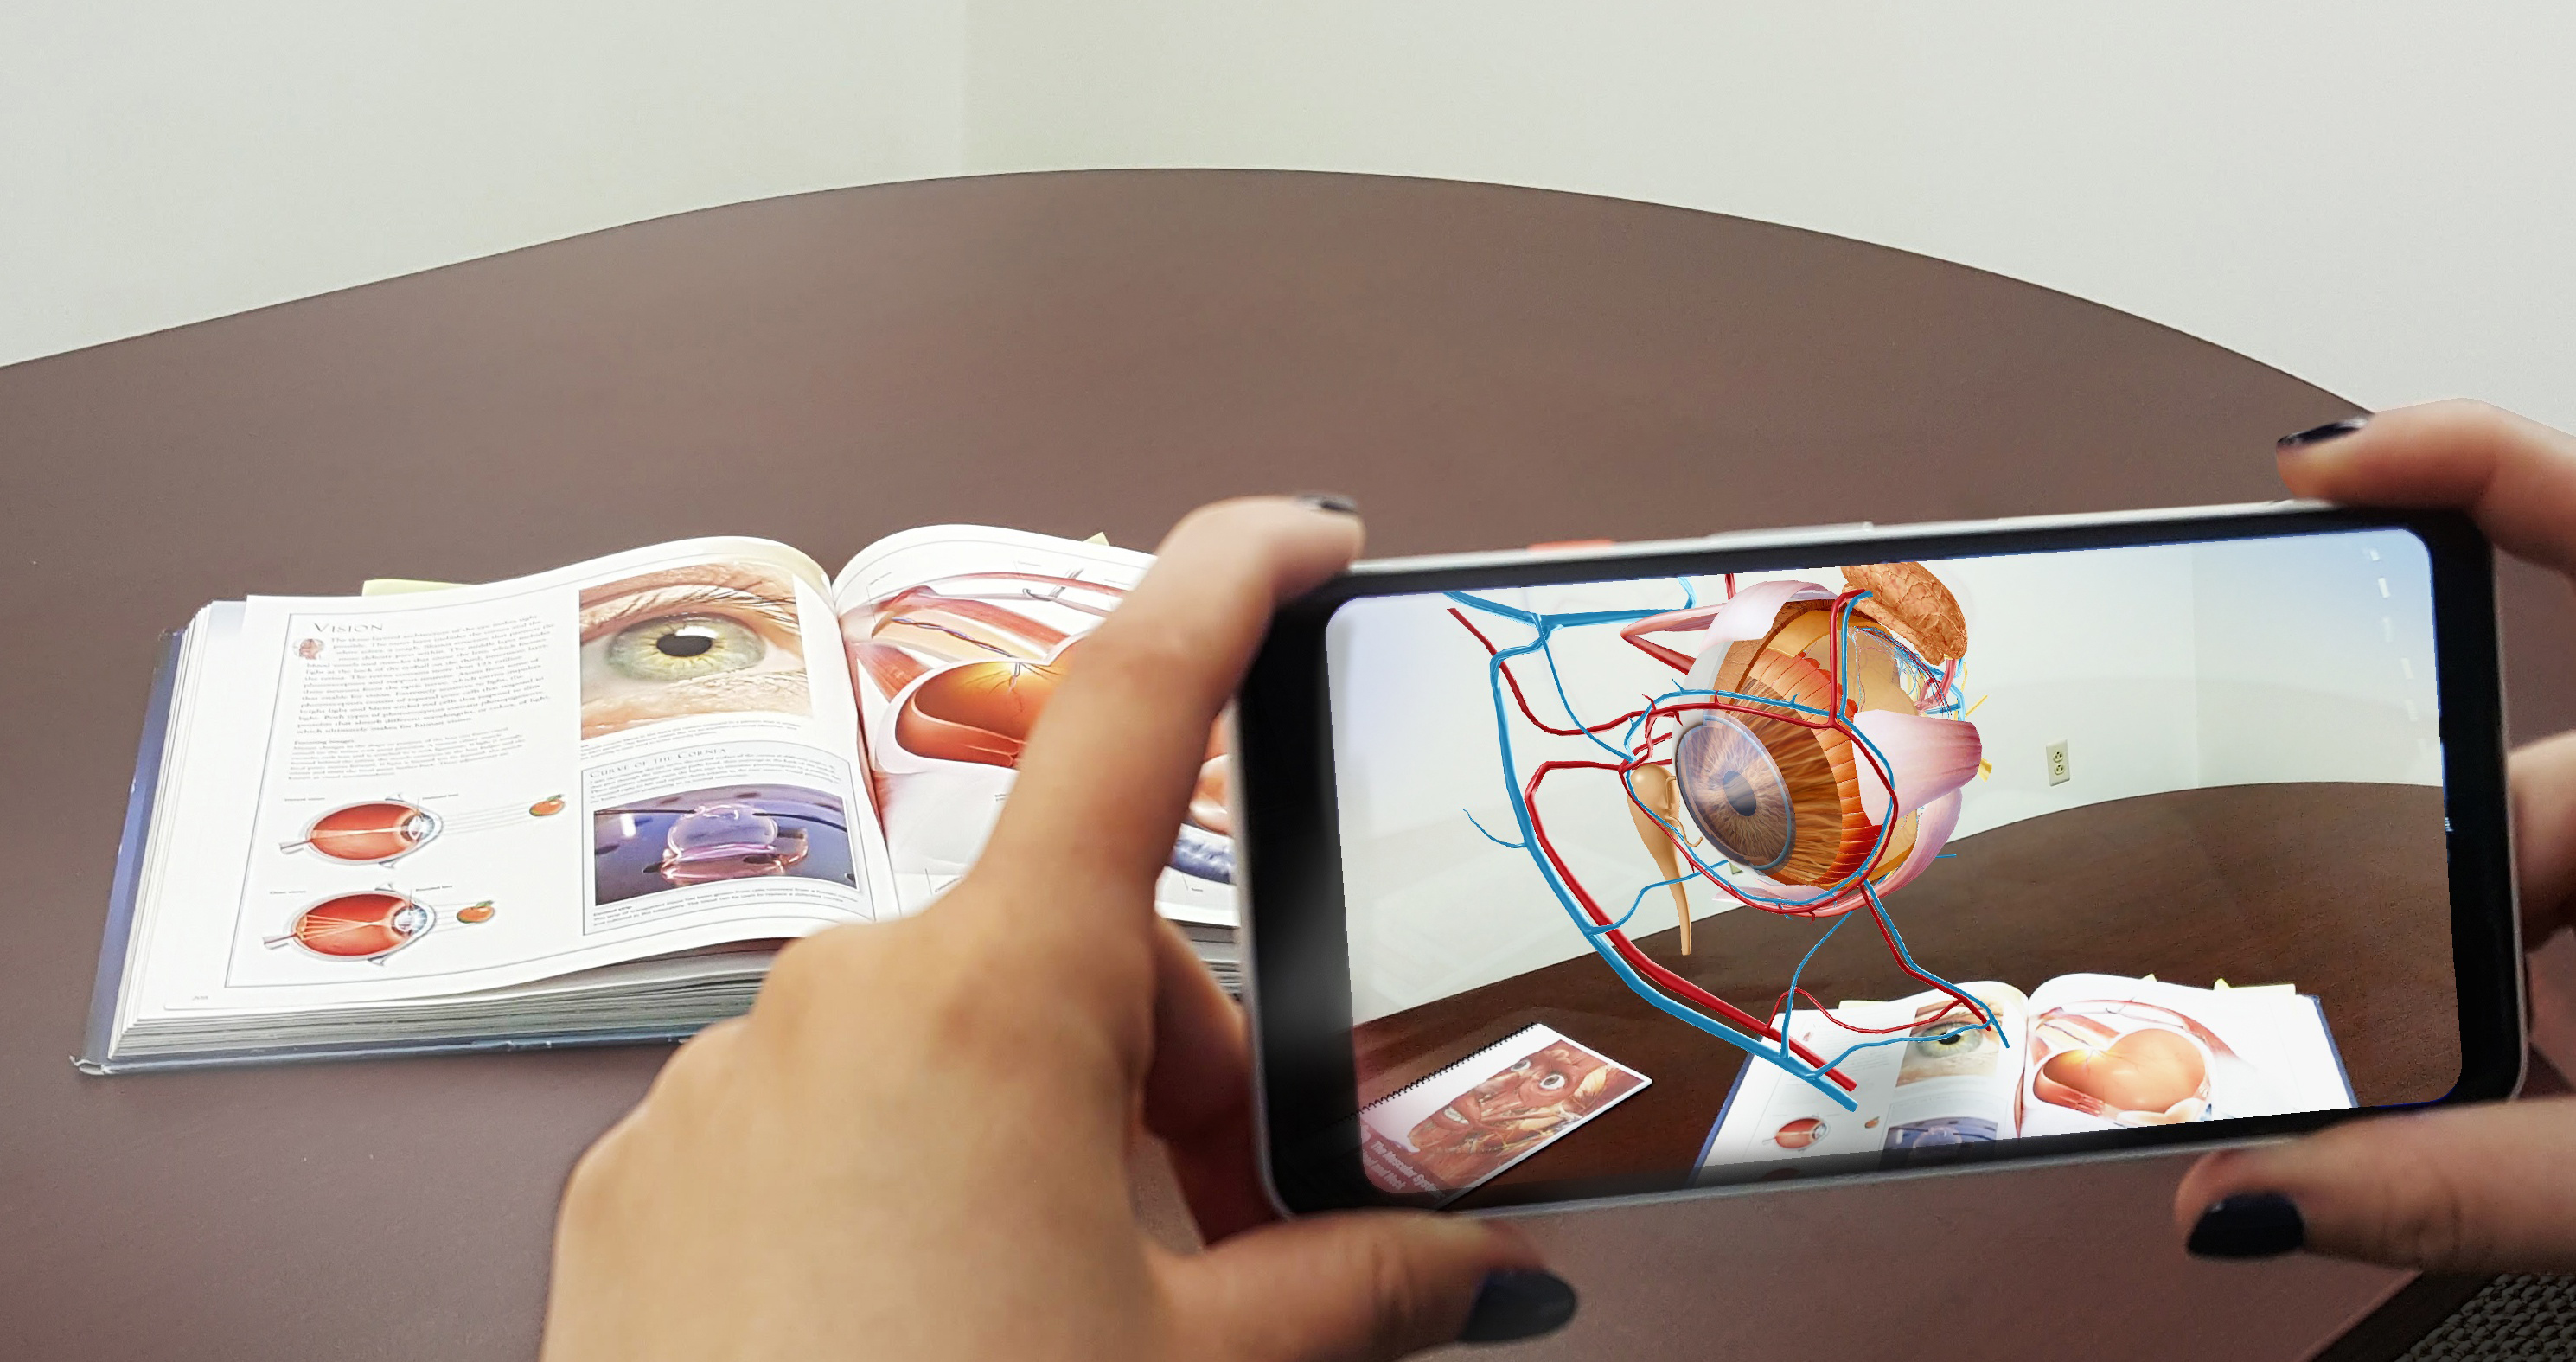 Using augmented reality in education and skills training